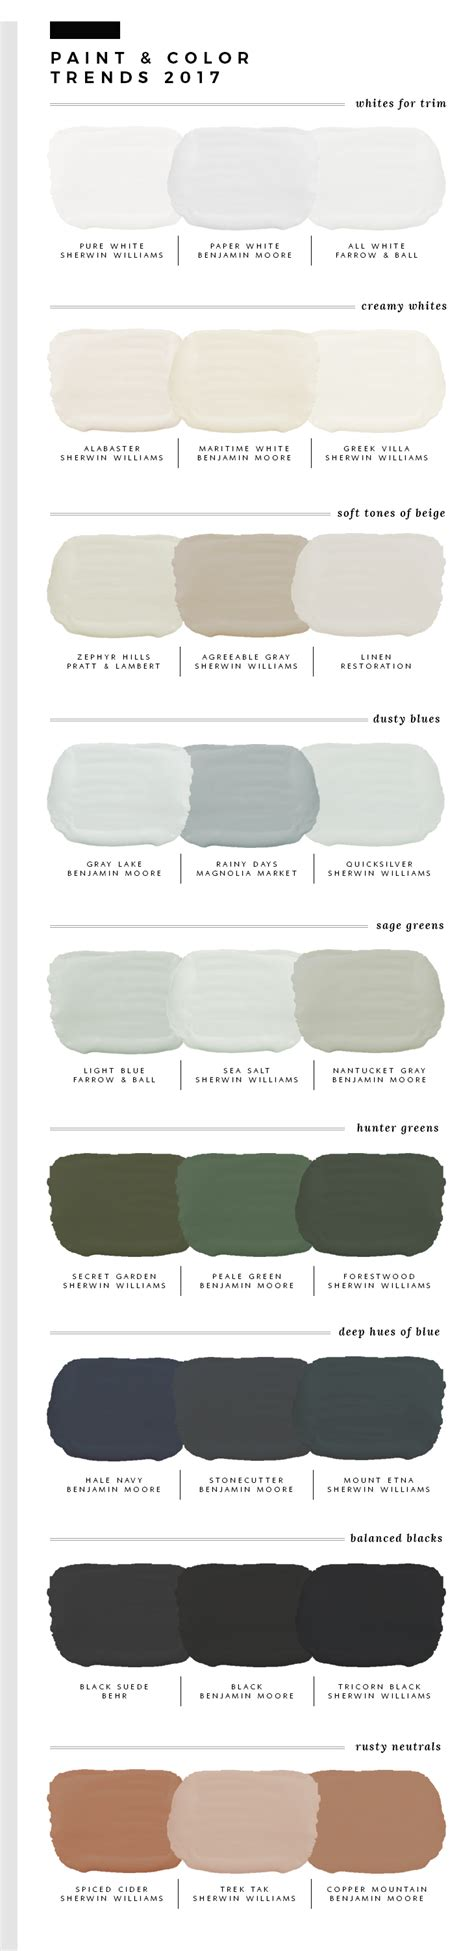 new paint colors for 2017 predicted paint colors for 2017 room for tuesday